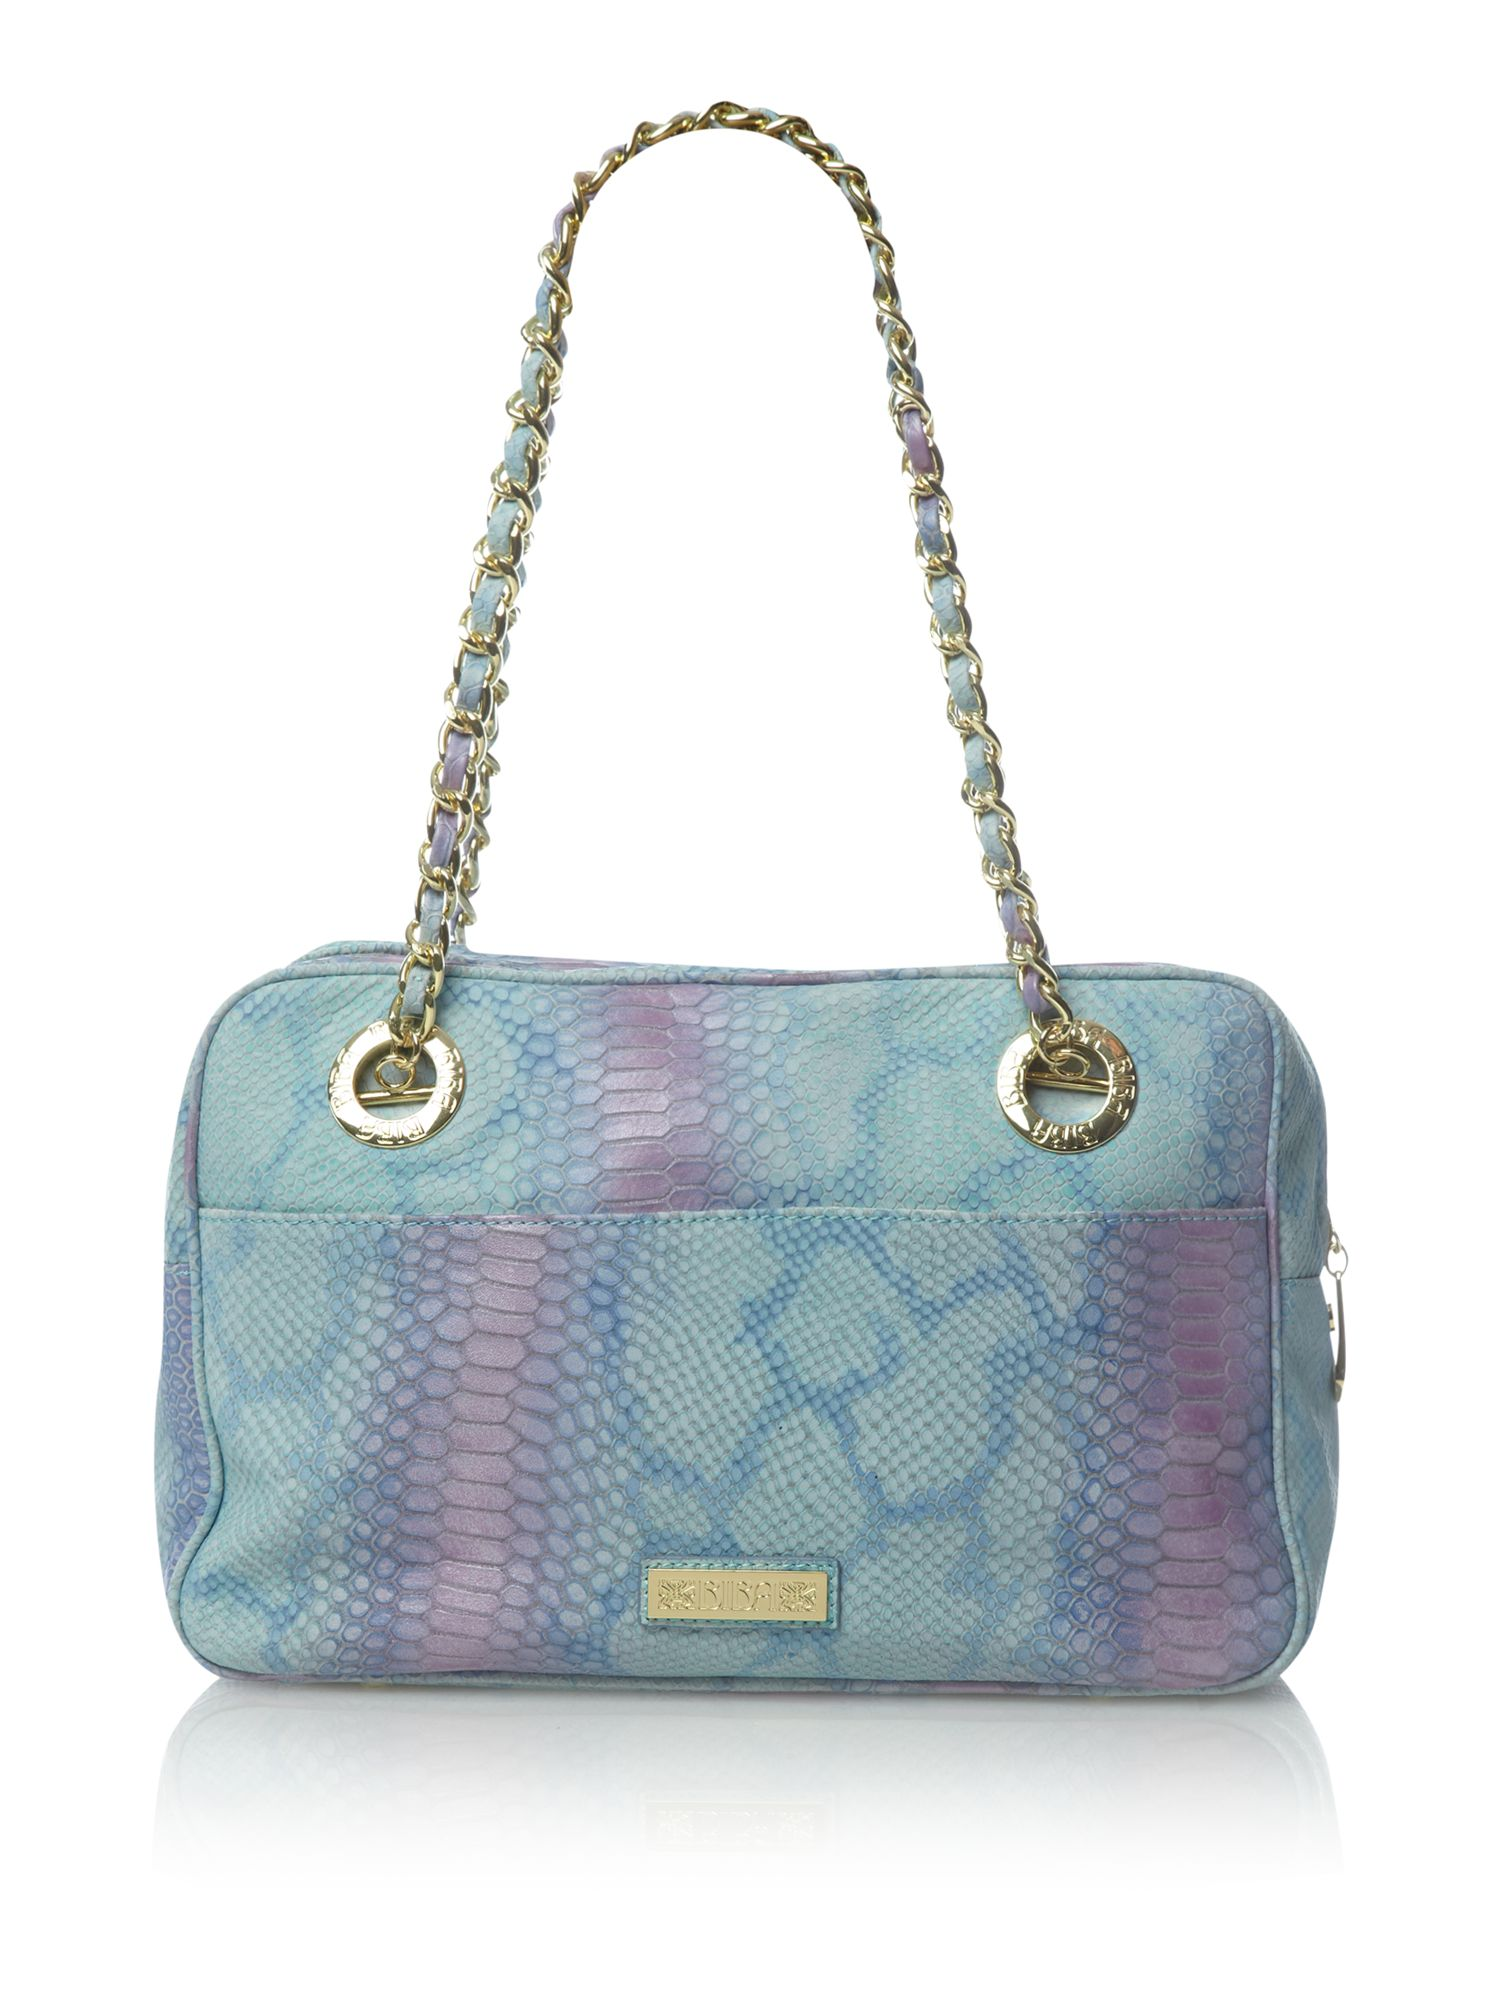 Elise chain shoulder bag